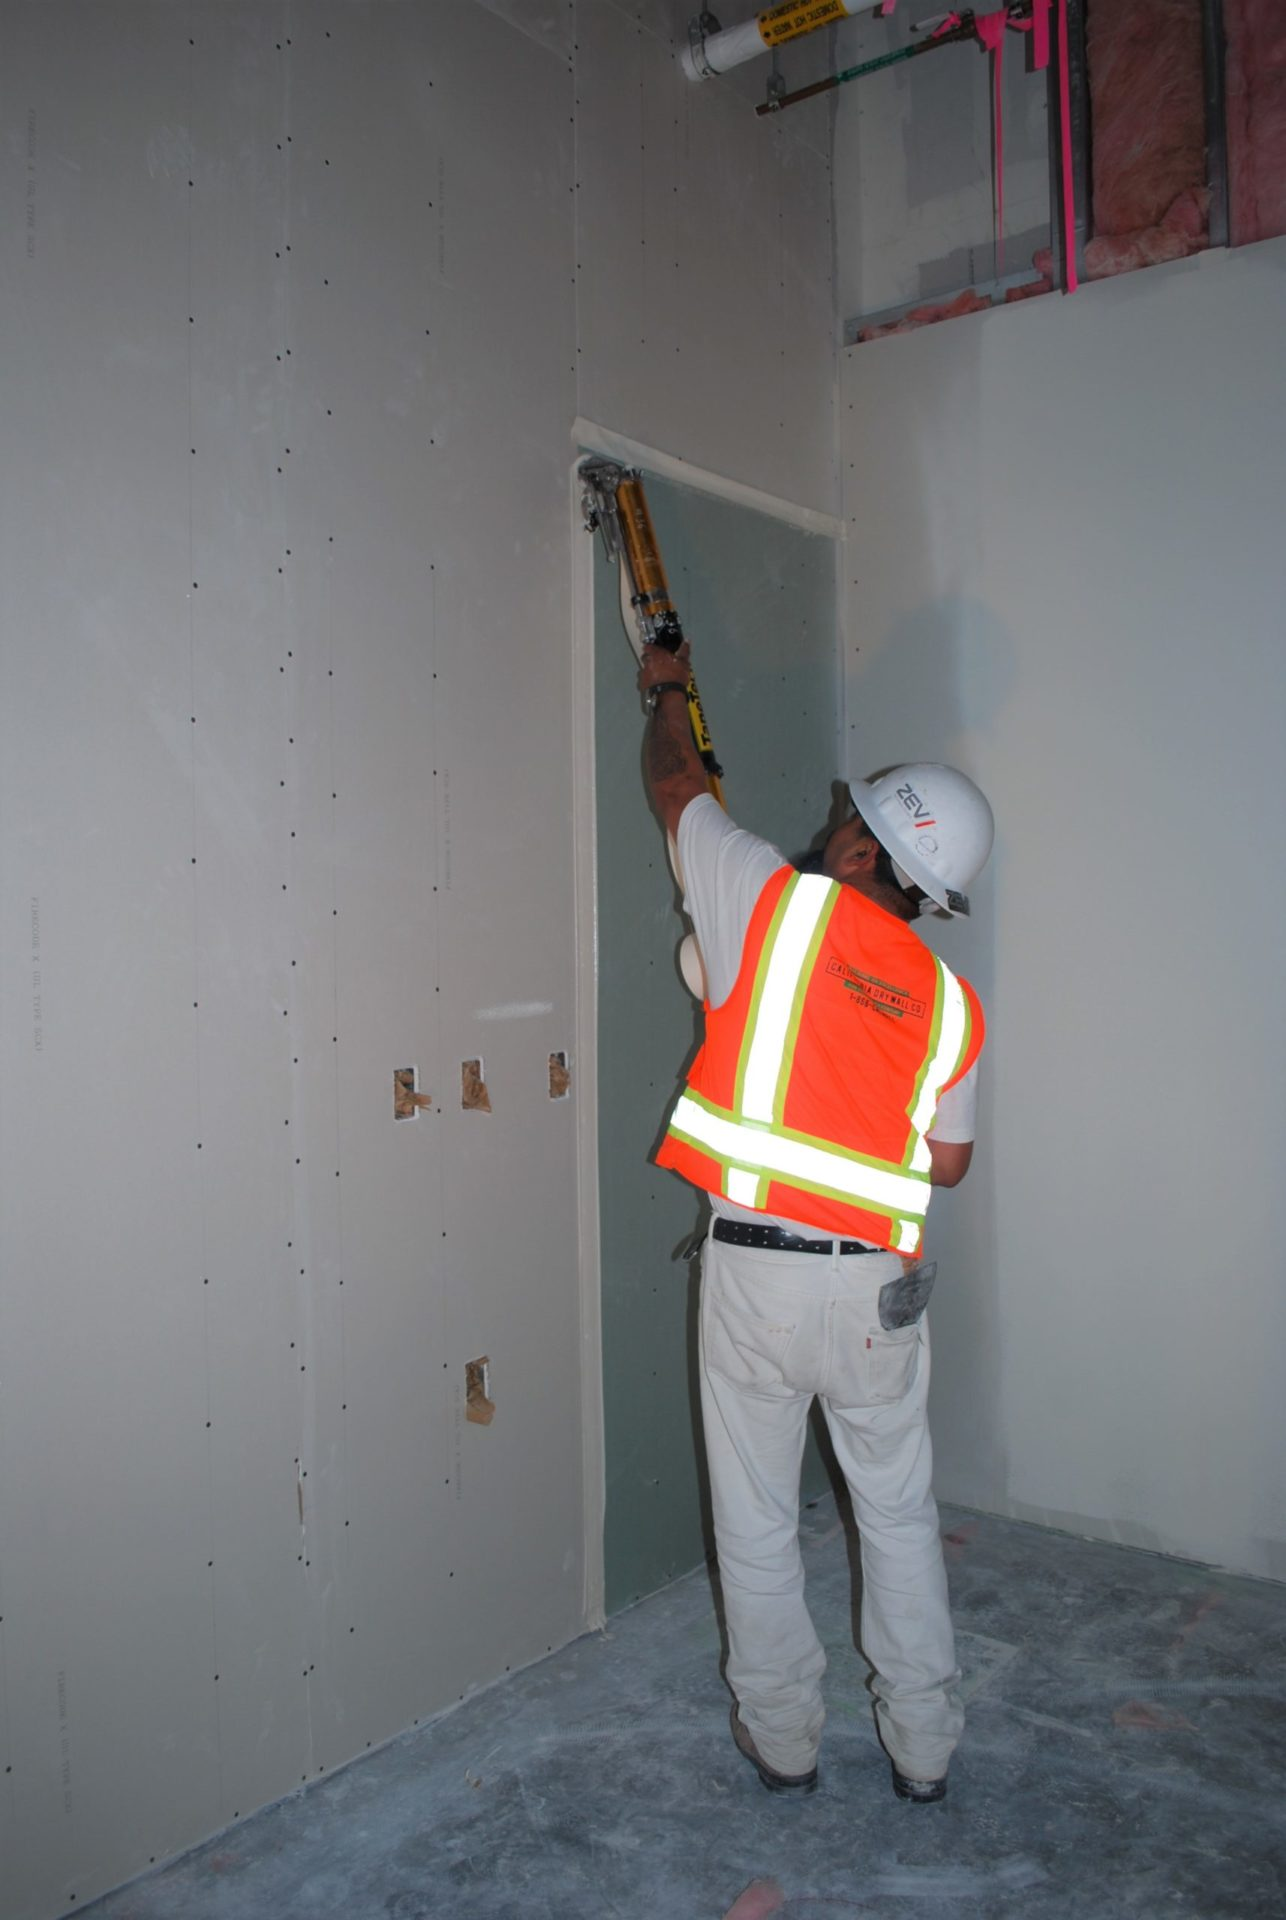 Image from the Gallery: Drywall Finishers 2017